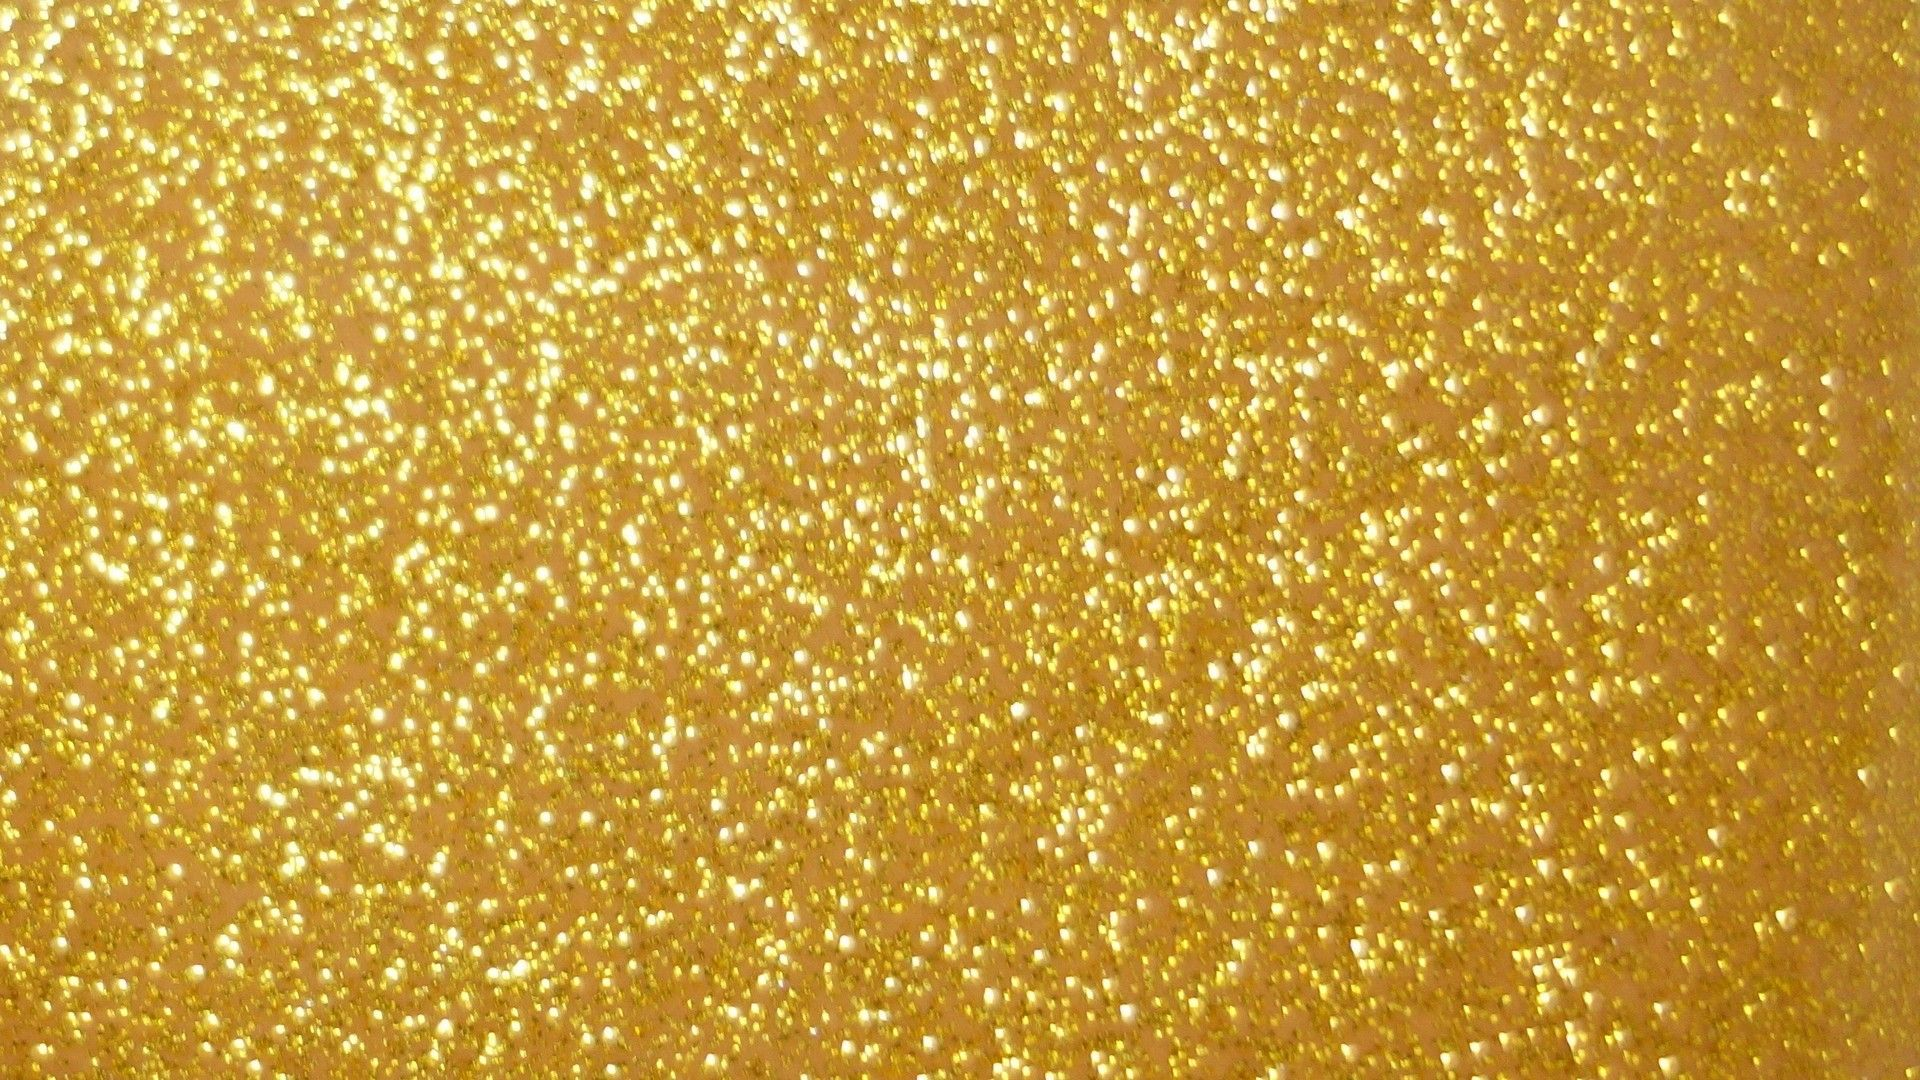 Sparkles Background Wallpaper Desktop Wallpaper Desktop Hd